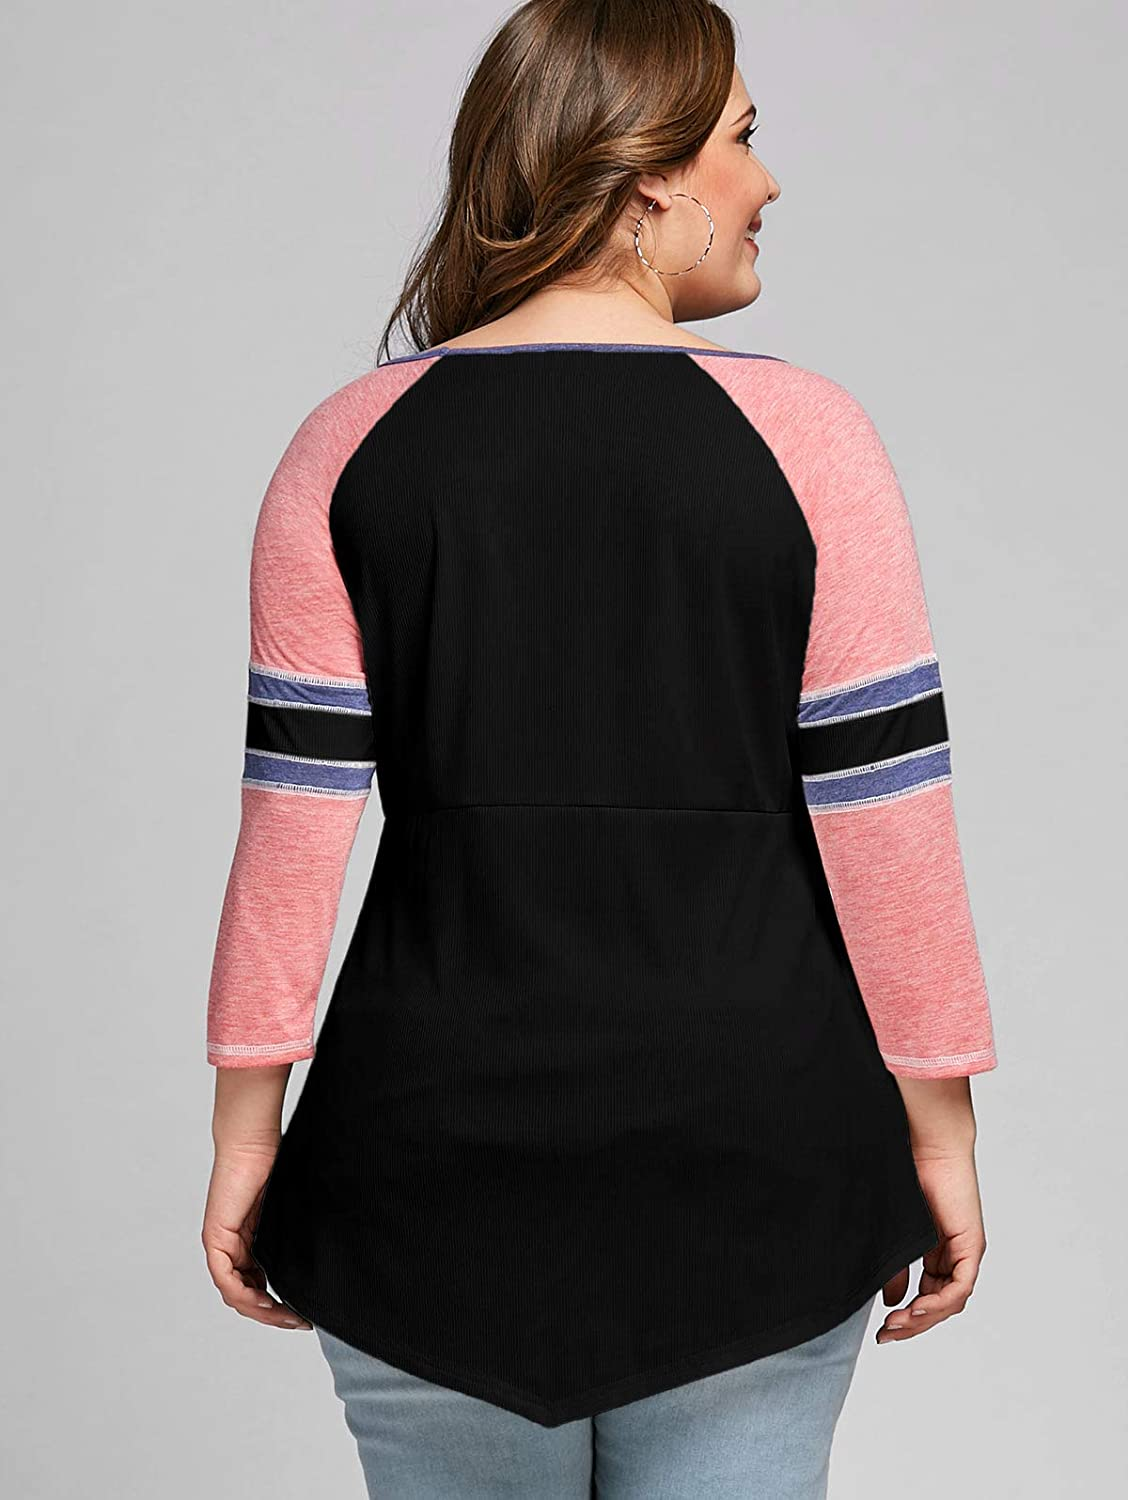 Long Sleeve Tunic Tops Lightweight Pullover Plus Size Mrsrui Women Cold Shoulder T-Shirt